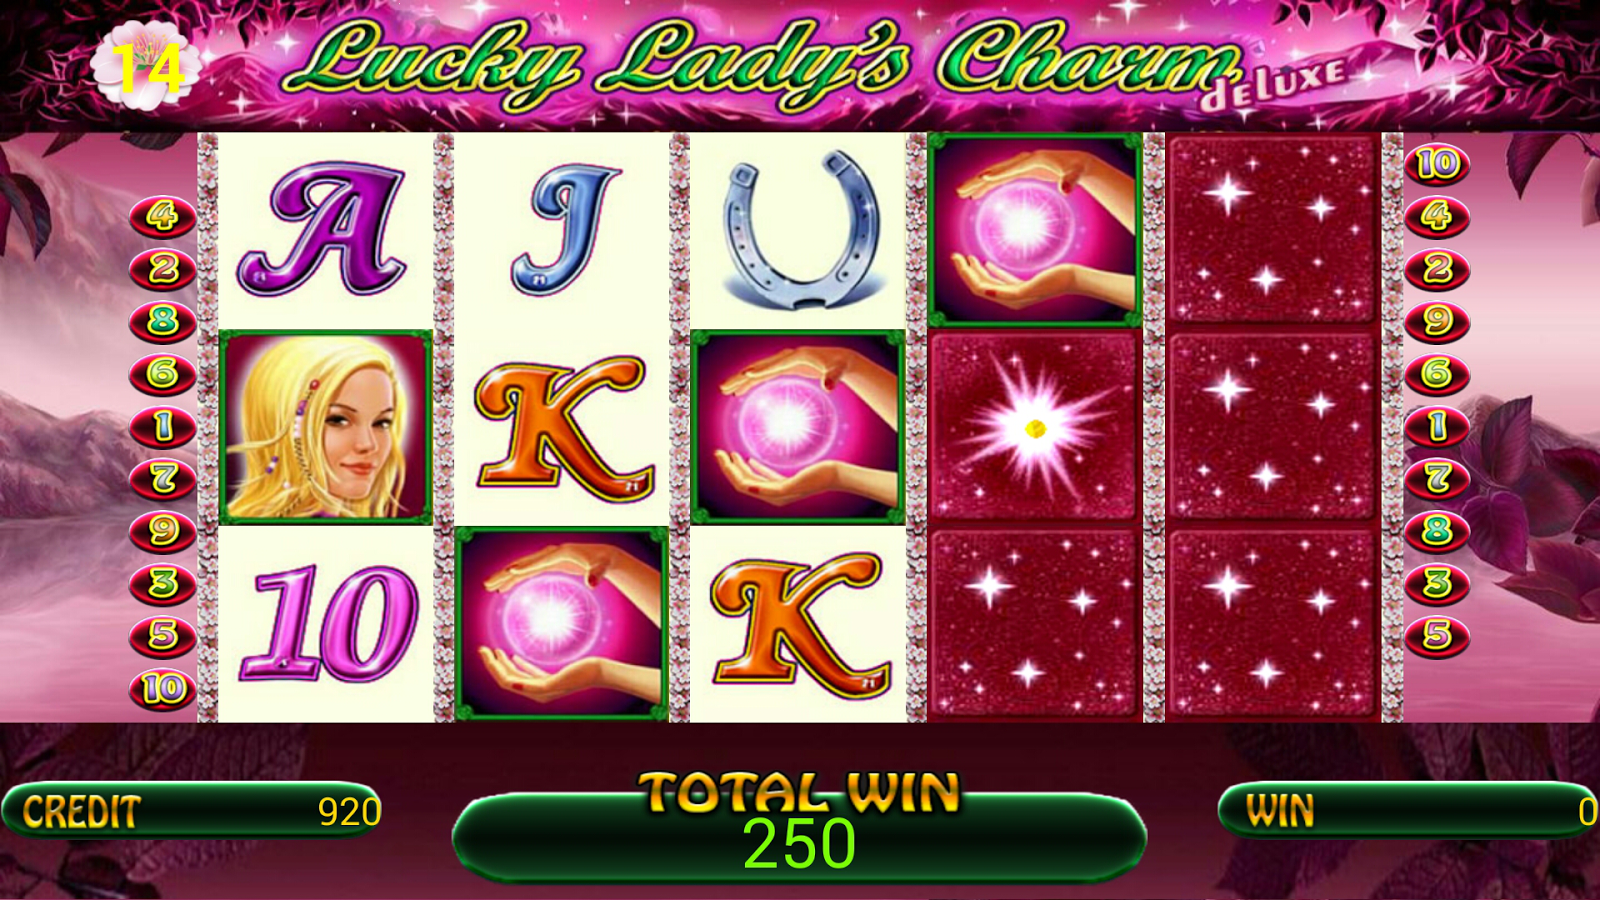 onlin casino lucky lady charm deluxe